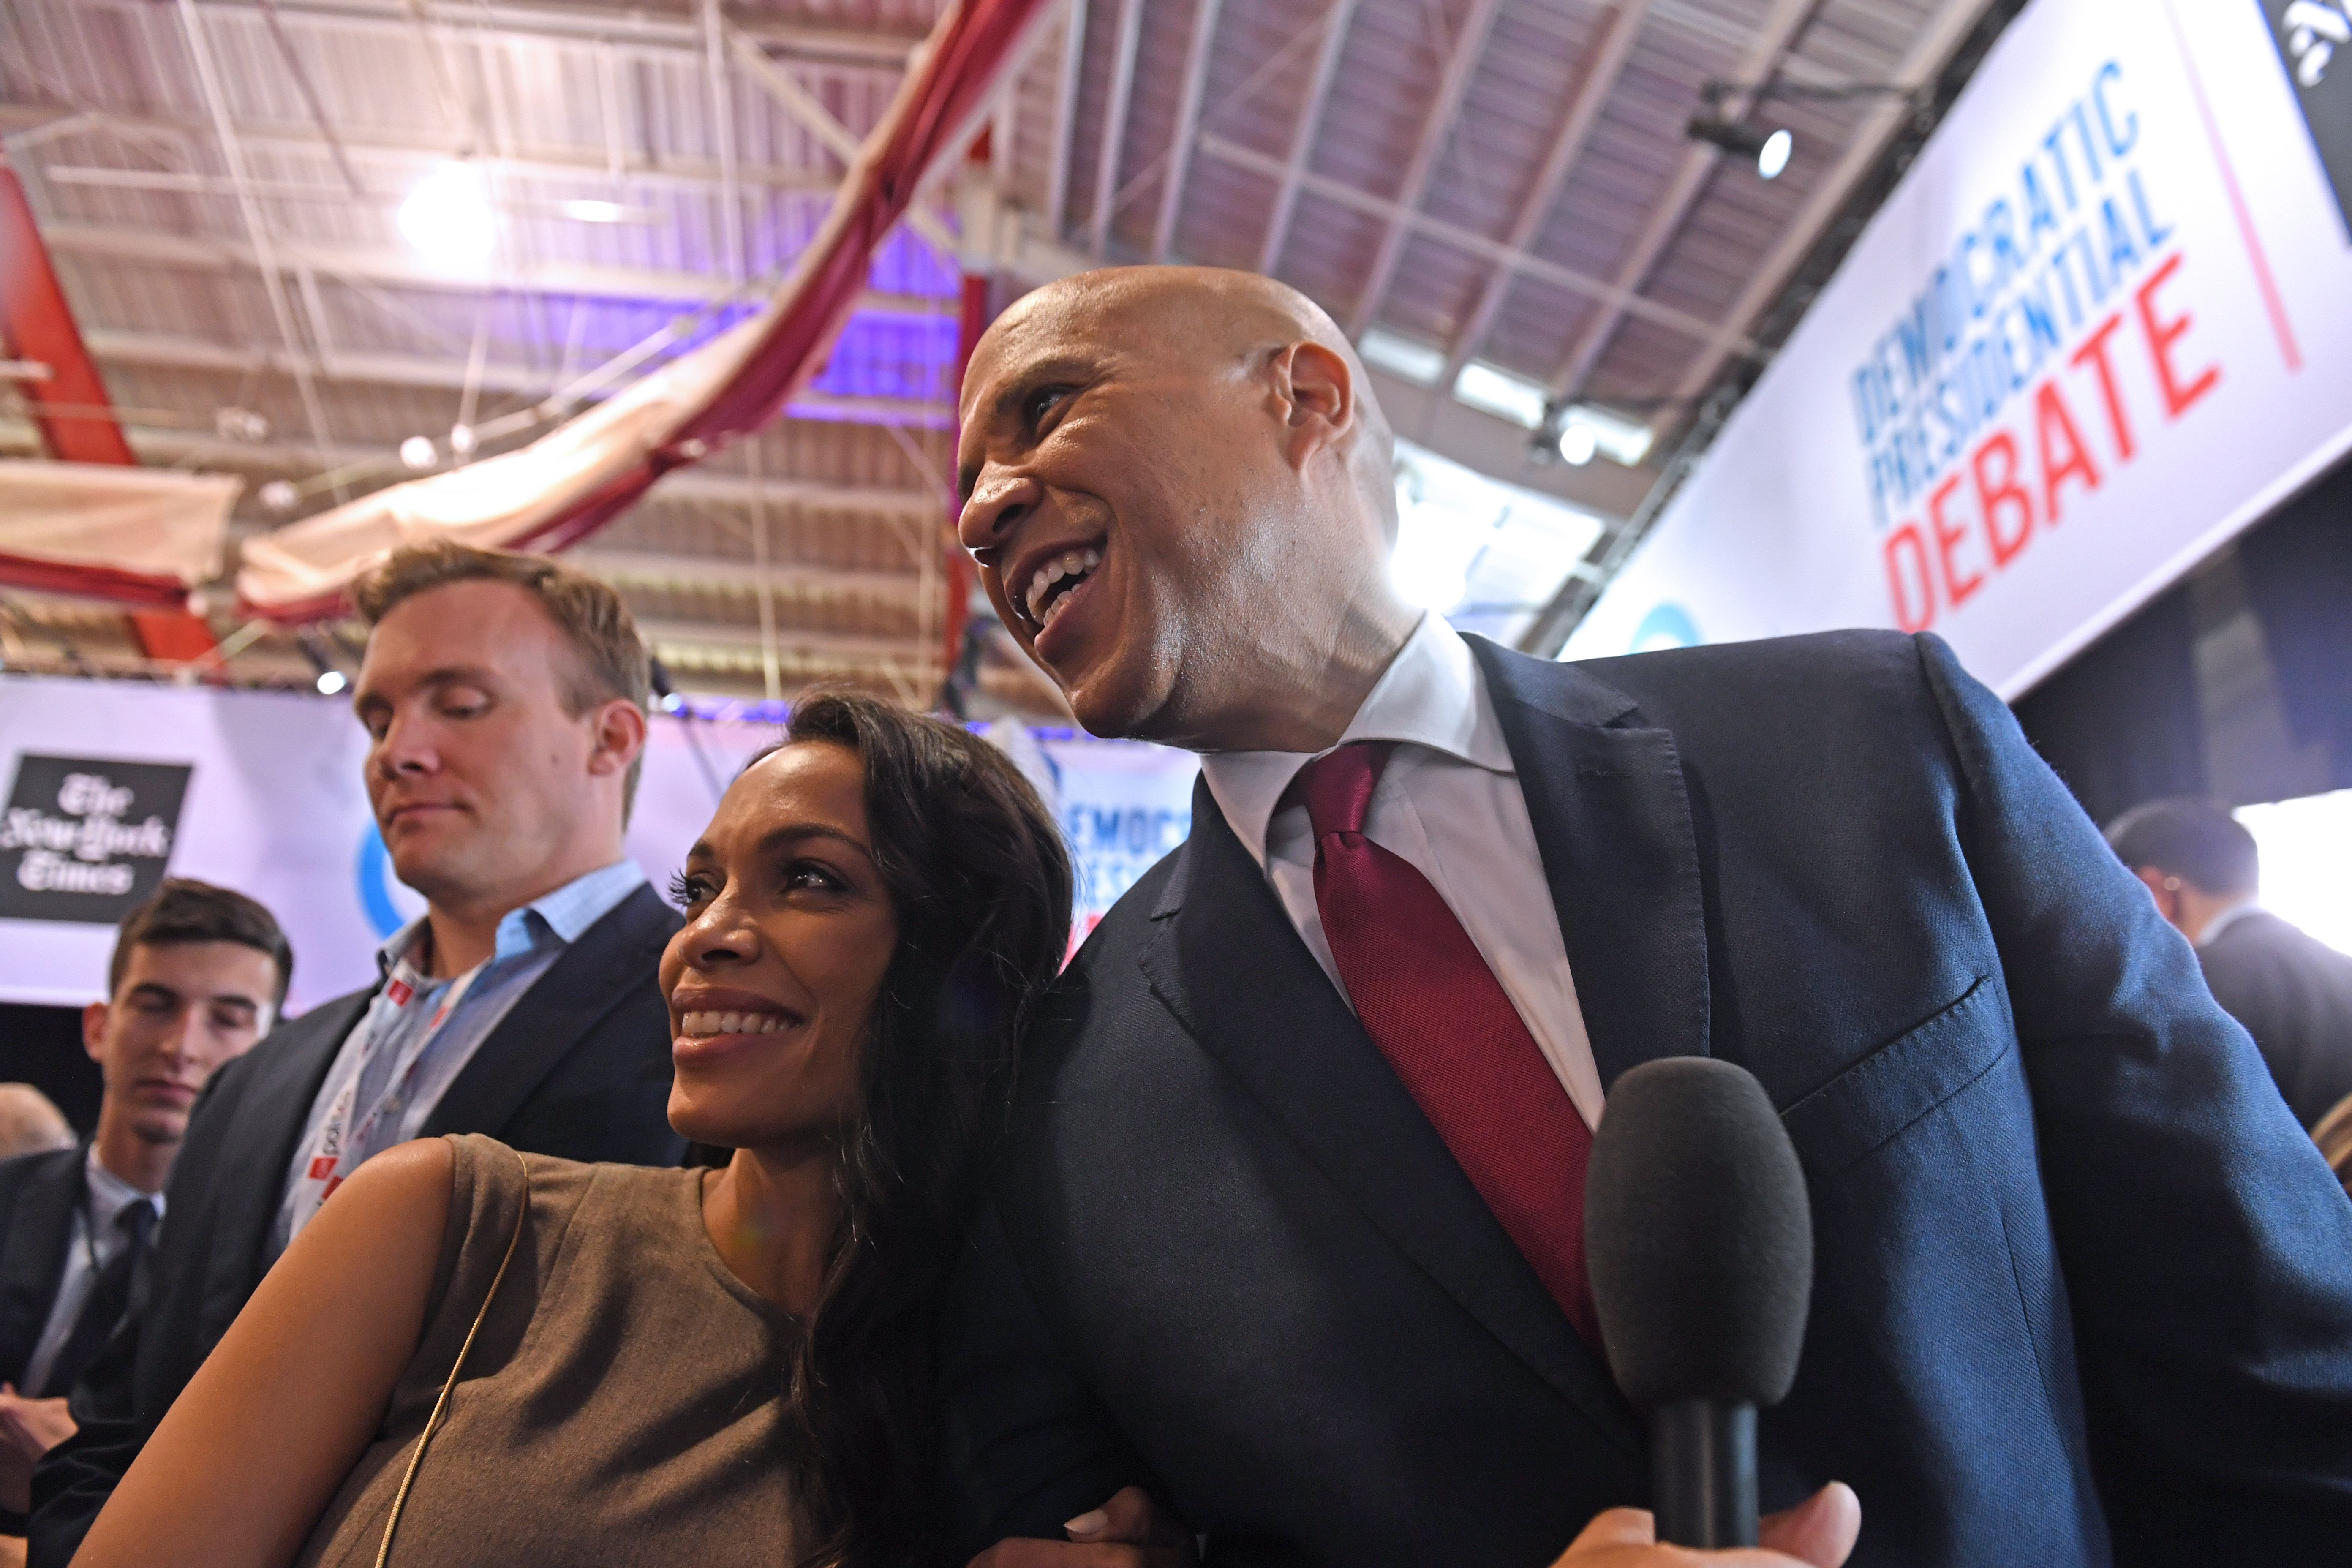 US actress Rosario Dawson (L) and boyfriend Democratic presidential hopeful New Jersey Senator Cory Booker pose for pictures in the spin room after the fourth Democratic primary debate of the 2020 presidential campaign season co-hosted by The New York Times and CNN at Otterbein University in Westerville, Ohio on October 15, 2019. (Photo by SAUL LOEB/AFP via Getty Images)